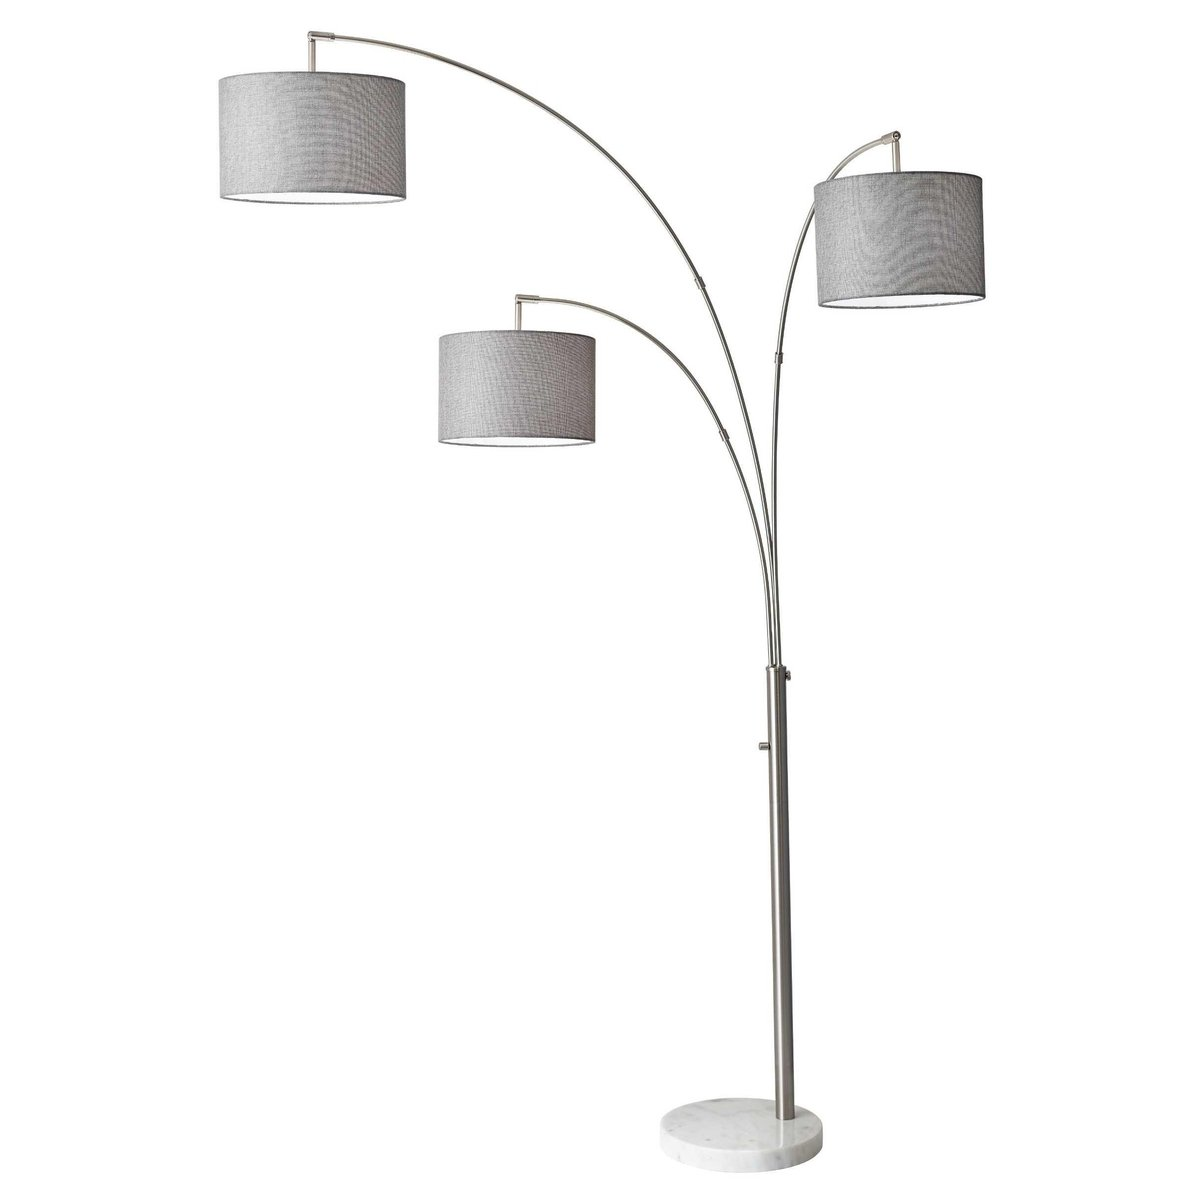 Adesso 4250-22 Bowery Arc 3-Light Floor Lamp, Steel, Smart Outlet Compatible, 83'' by Adesso